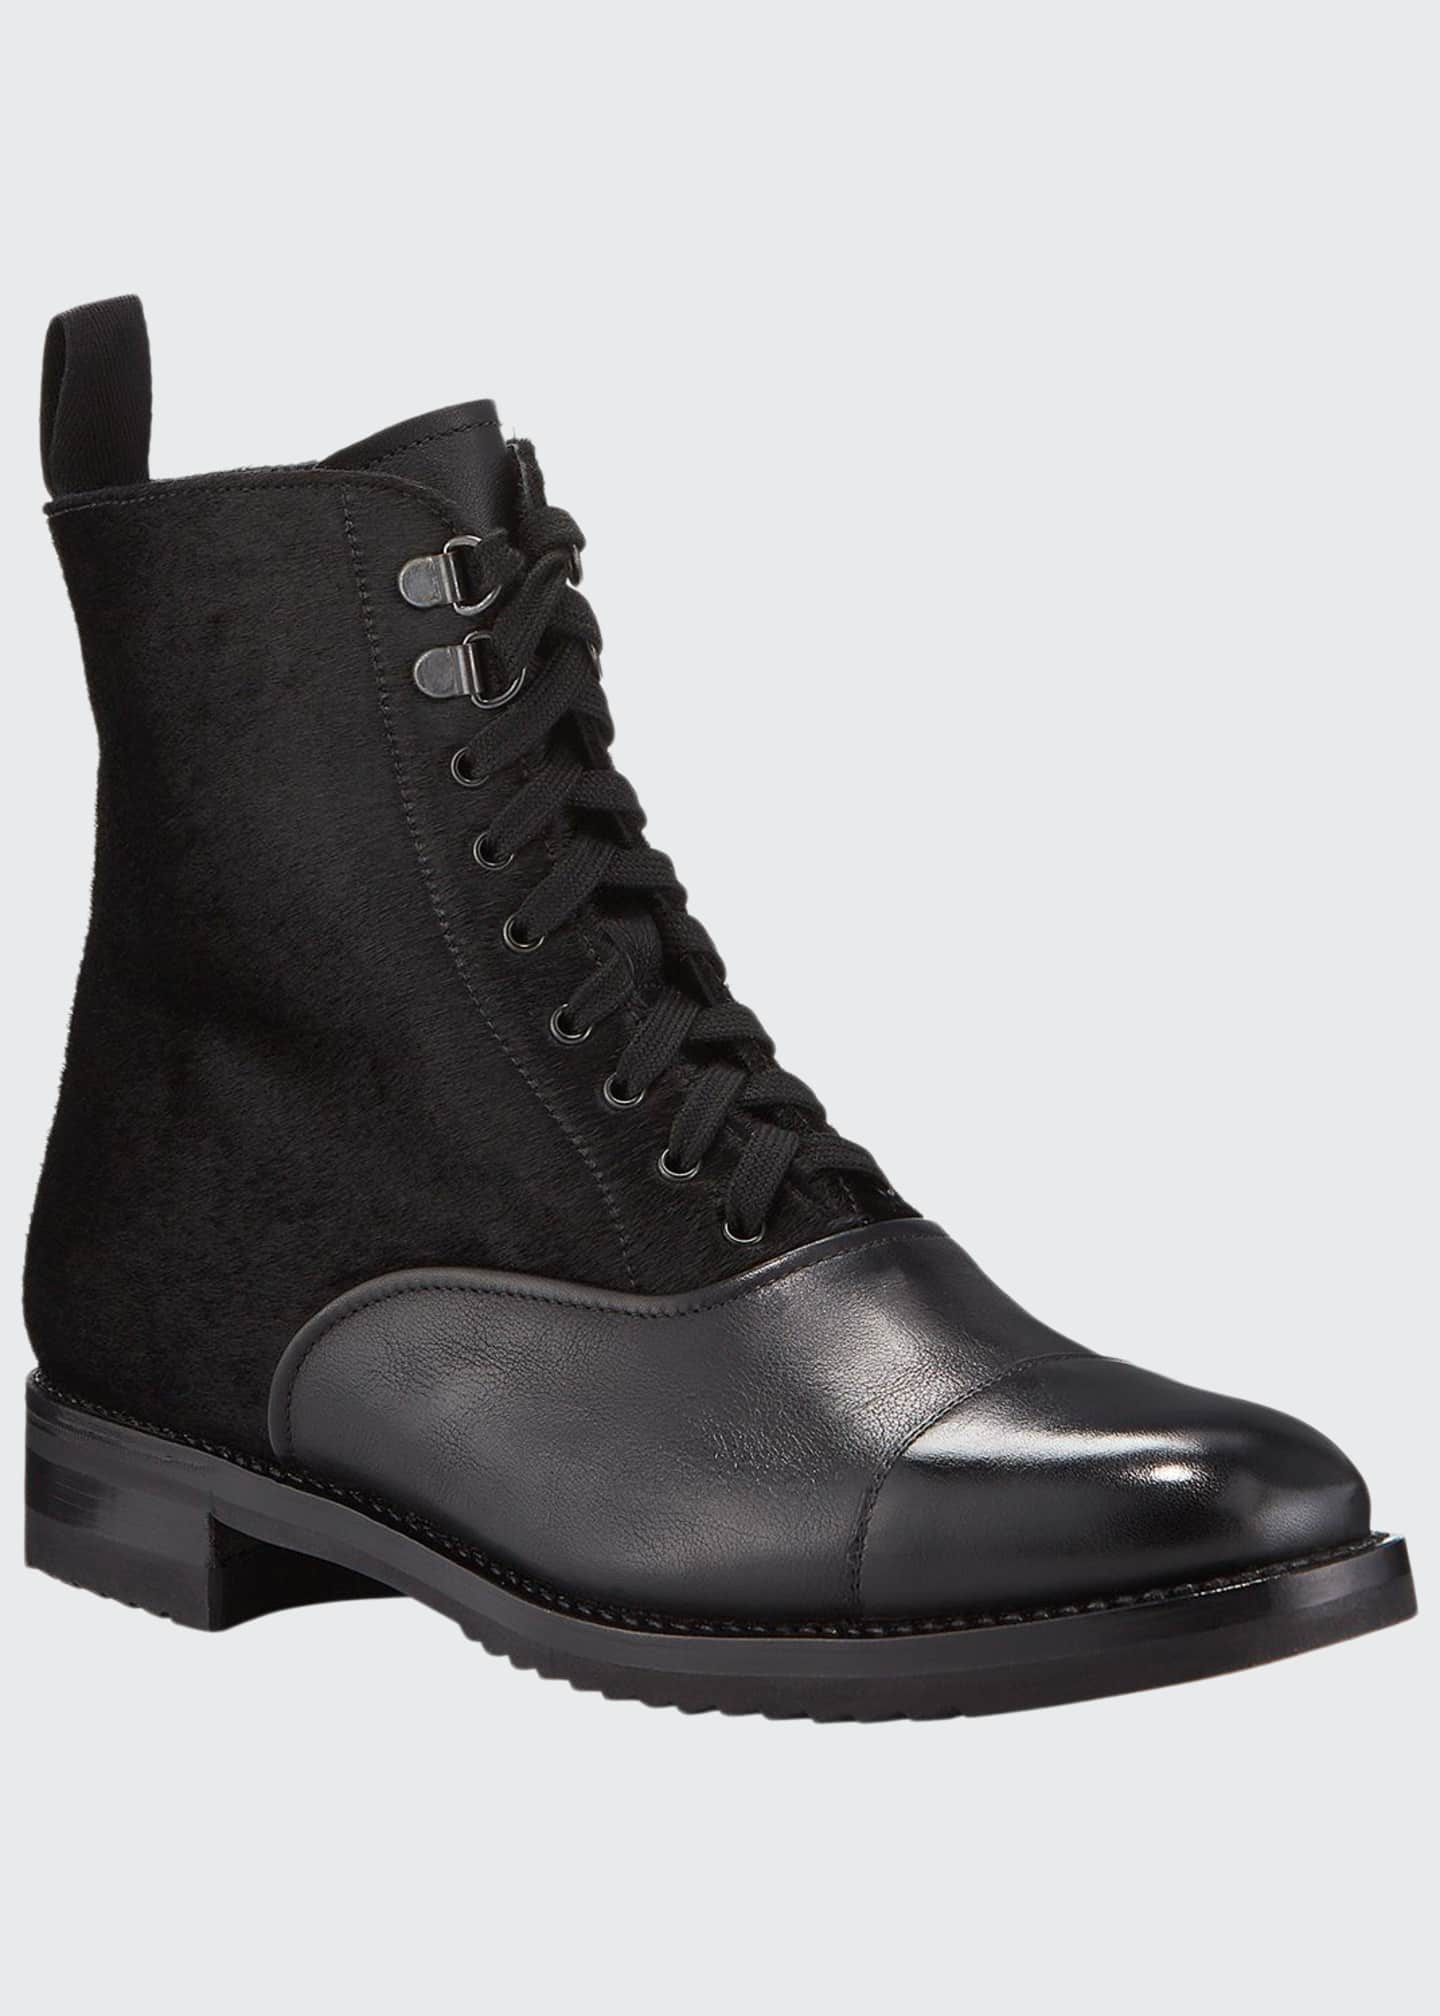 Gravati Mixed Leather Lace-Up Hiker Boots